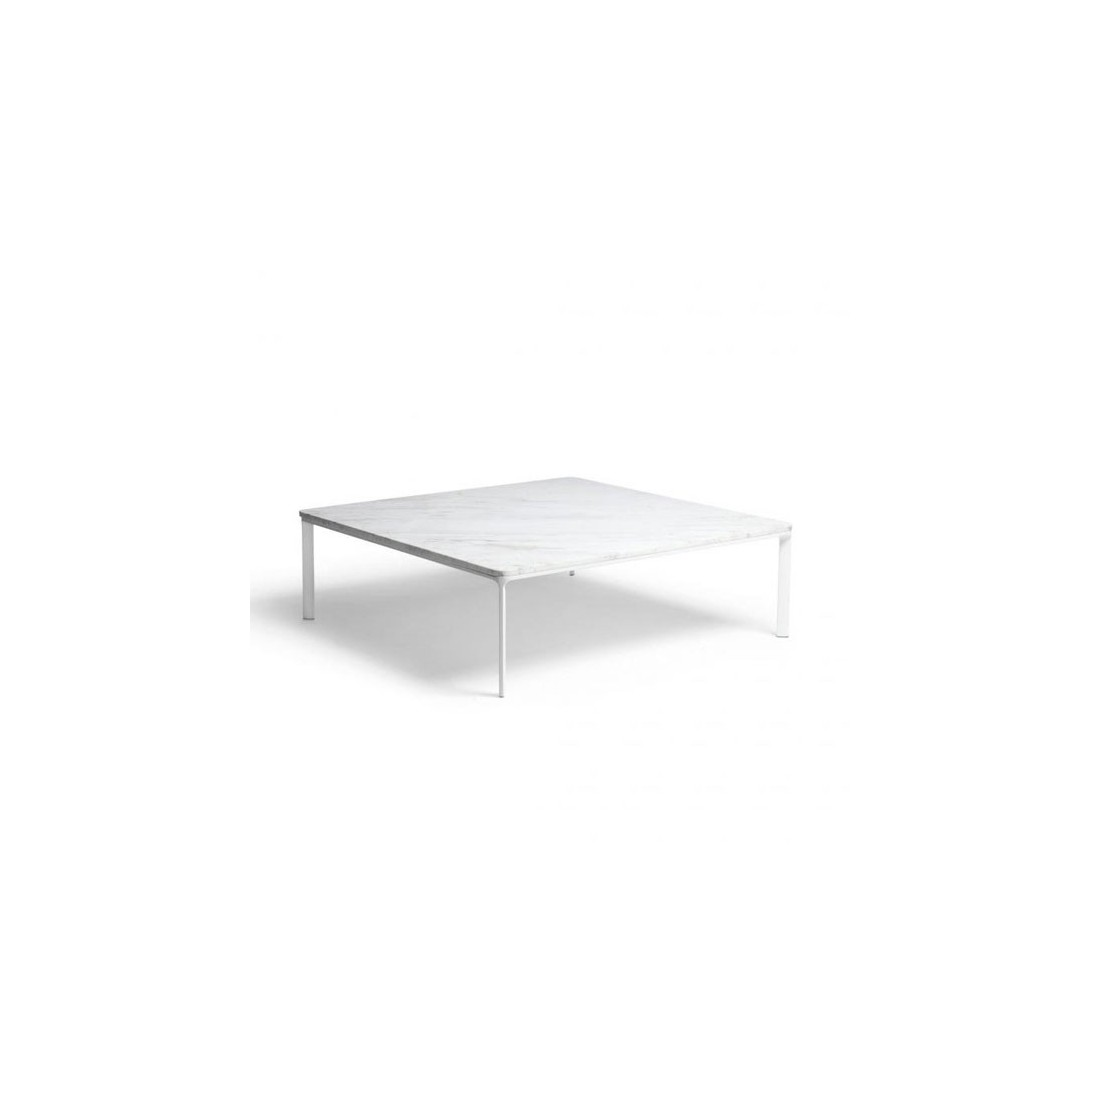 Table basse carr e 120 x 120 cm park life kettal kettal for Table carree 120 cm